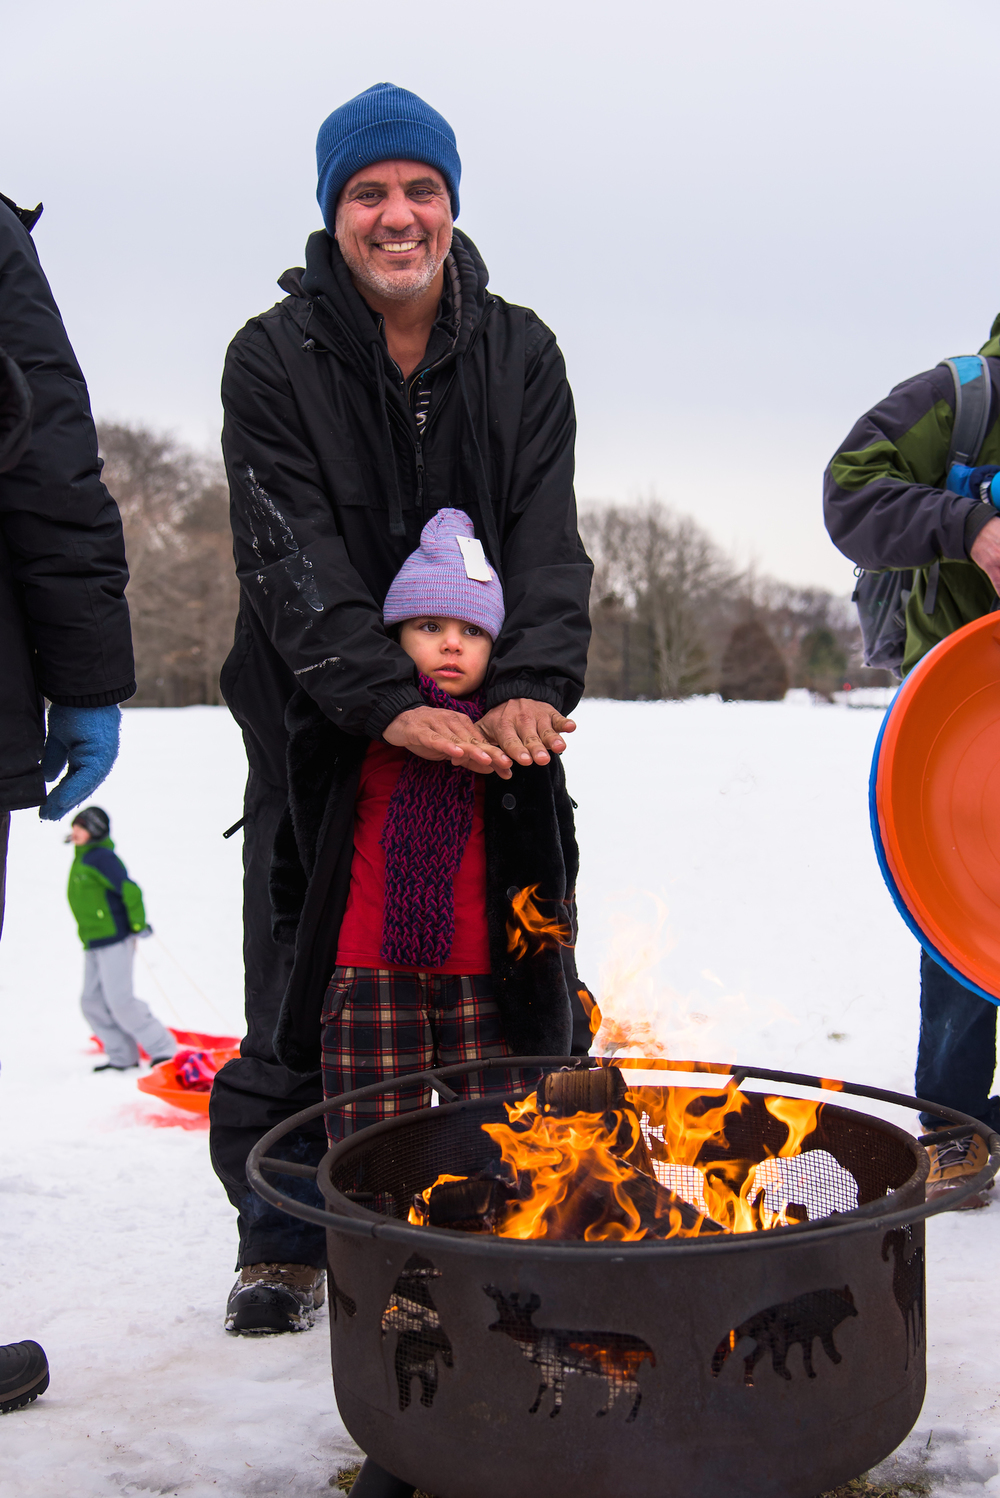 Nour Almamouri, 3, and Ahmad Almamouri, 42, of Portland by way of Iraq warm themselves by the fire.